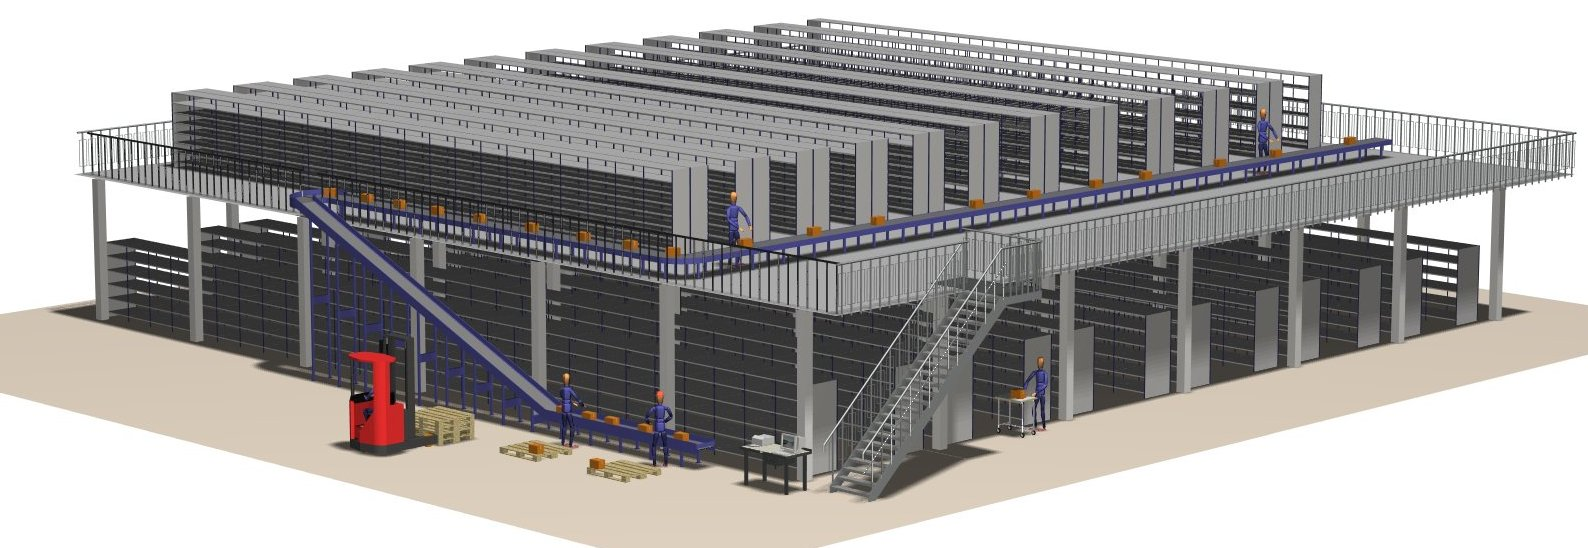 Layout Design Services For Warehouse Facilities Equipment